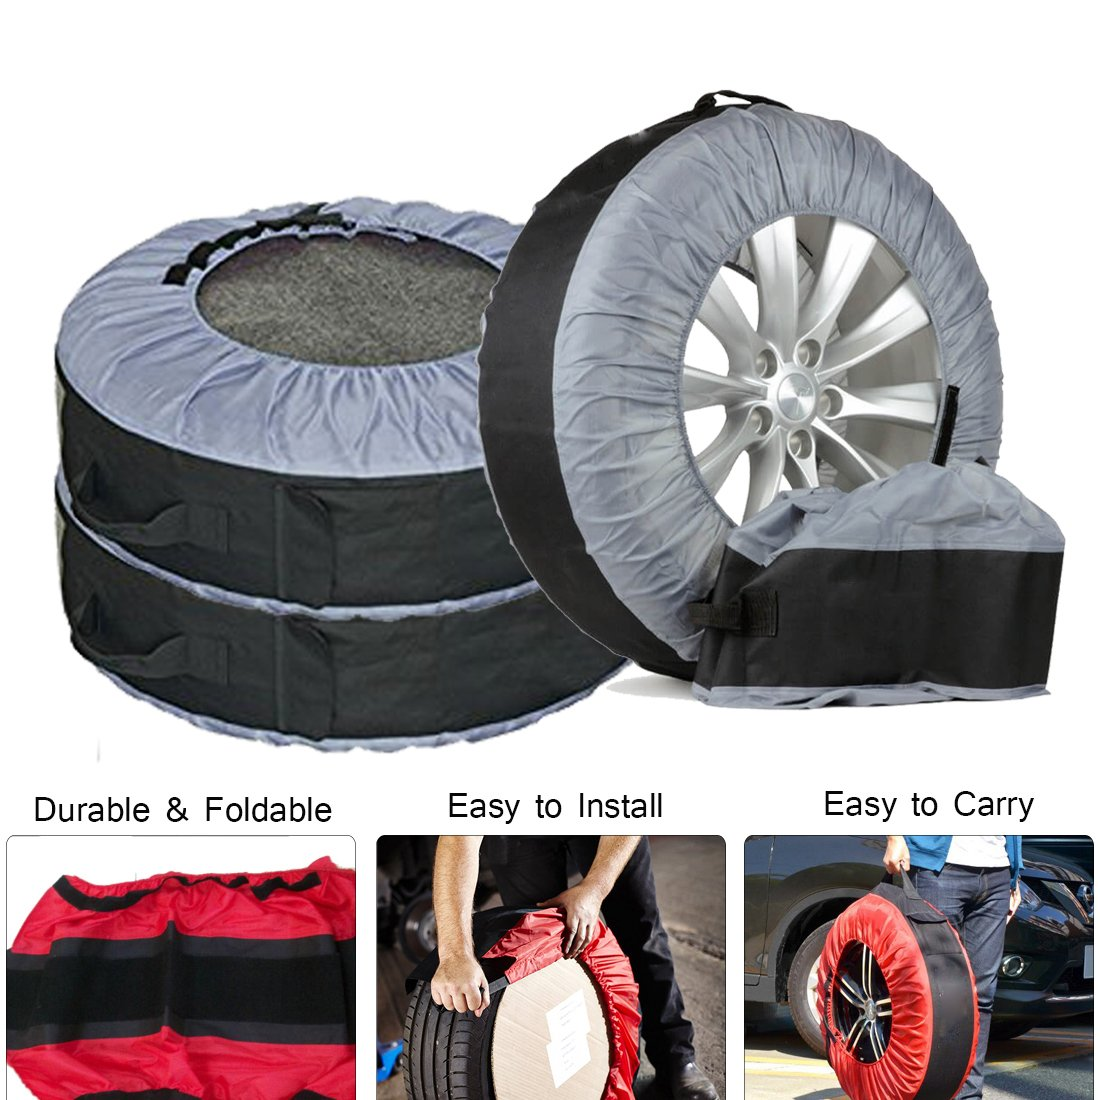 FLR Tire Tote Adjustable Waterproof Grey 30in Tire Covers Bags Seasonal Tire Storage Bag for Car Off Road Truck Tire Totes Set of 4 by FLR (Image #4)